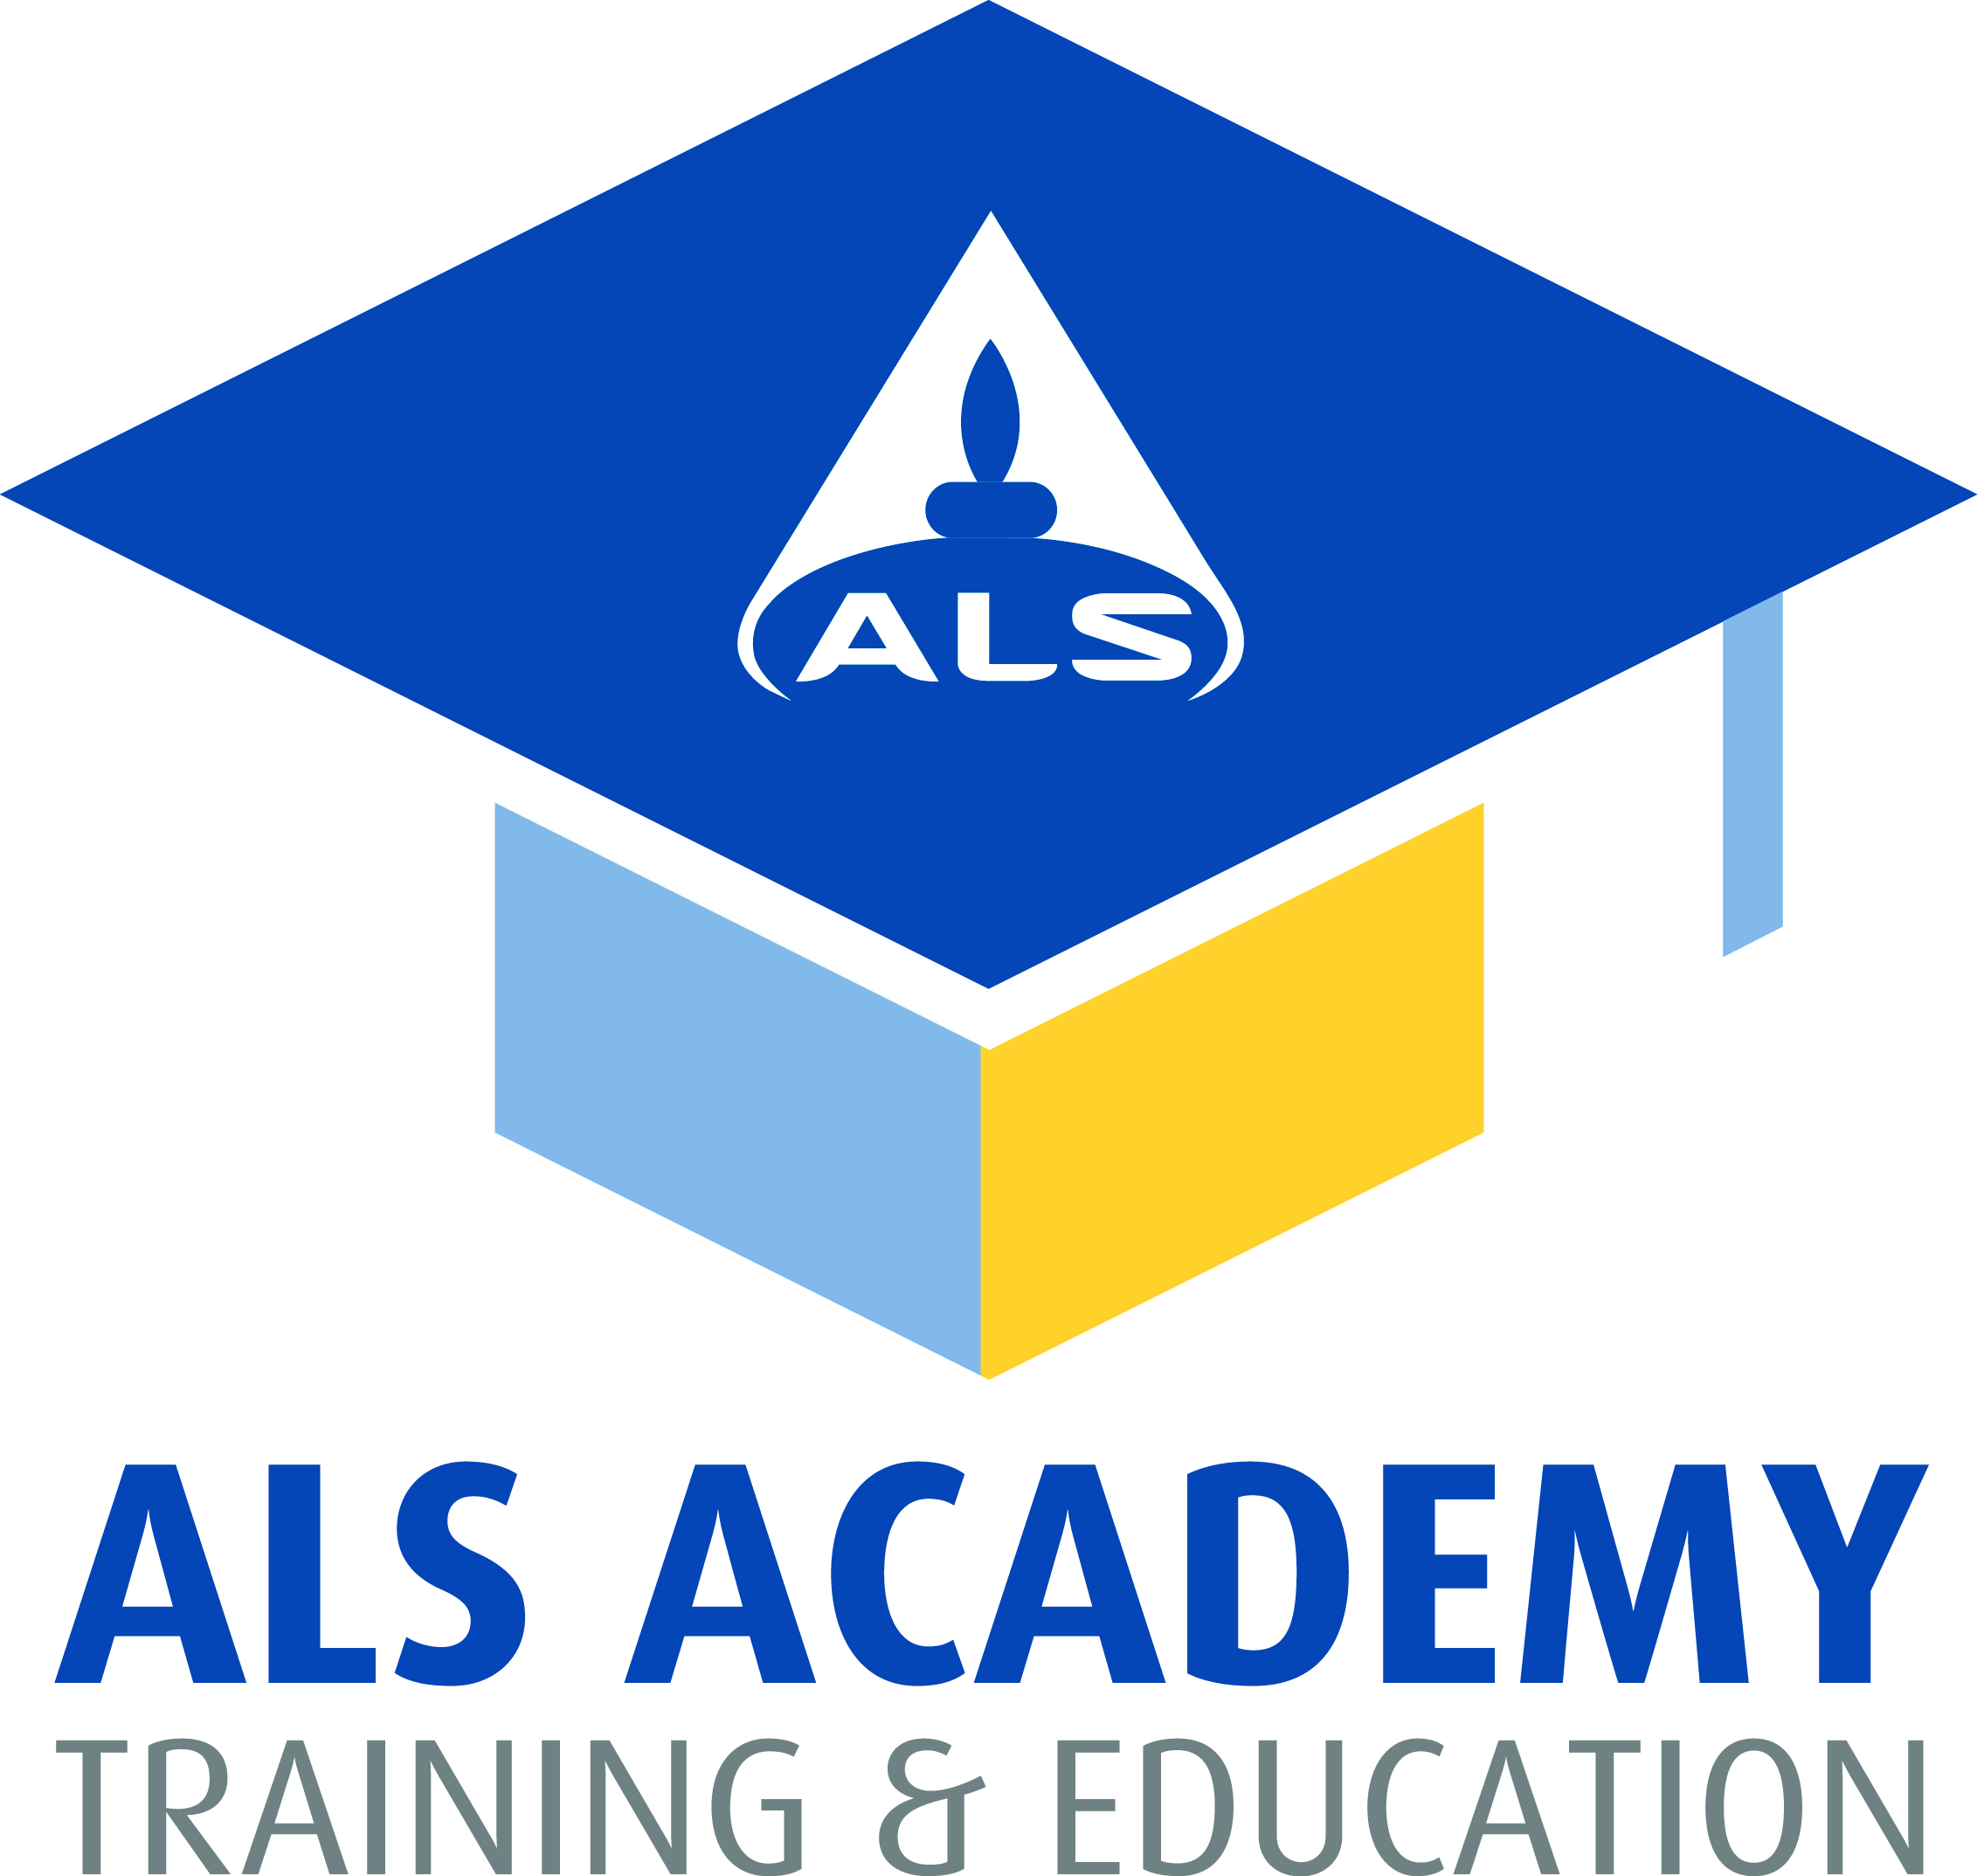 ALSolutions TRAINING